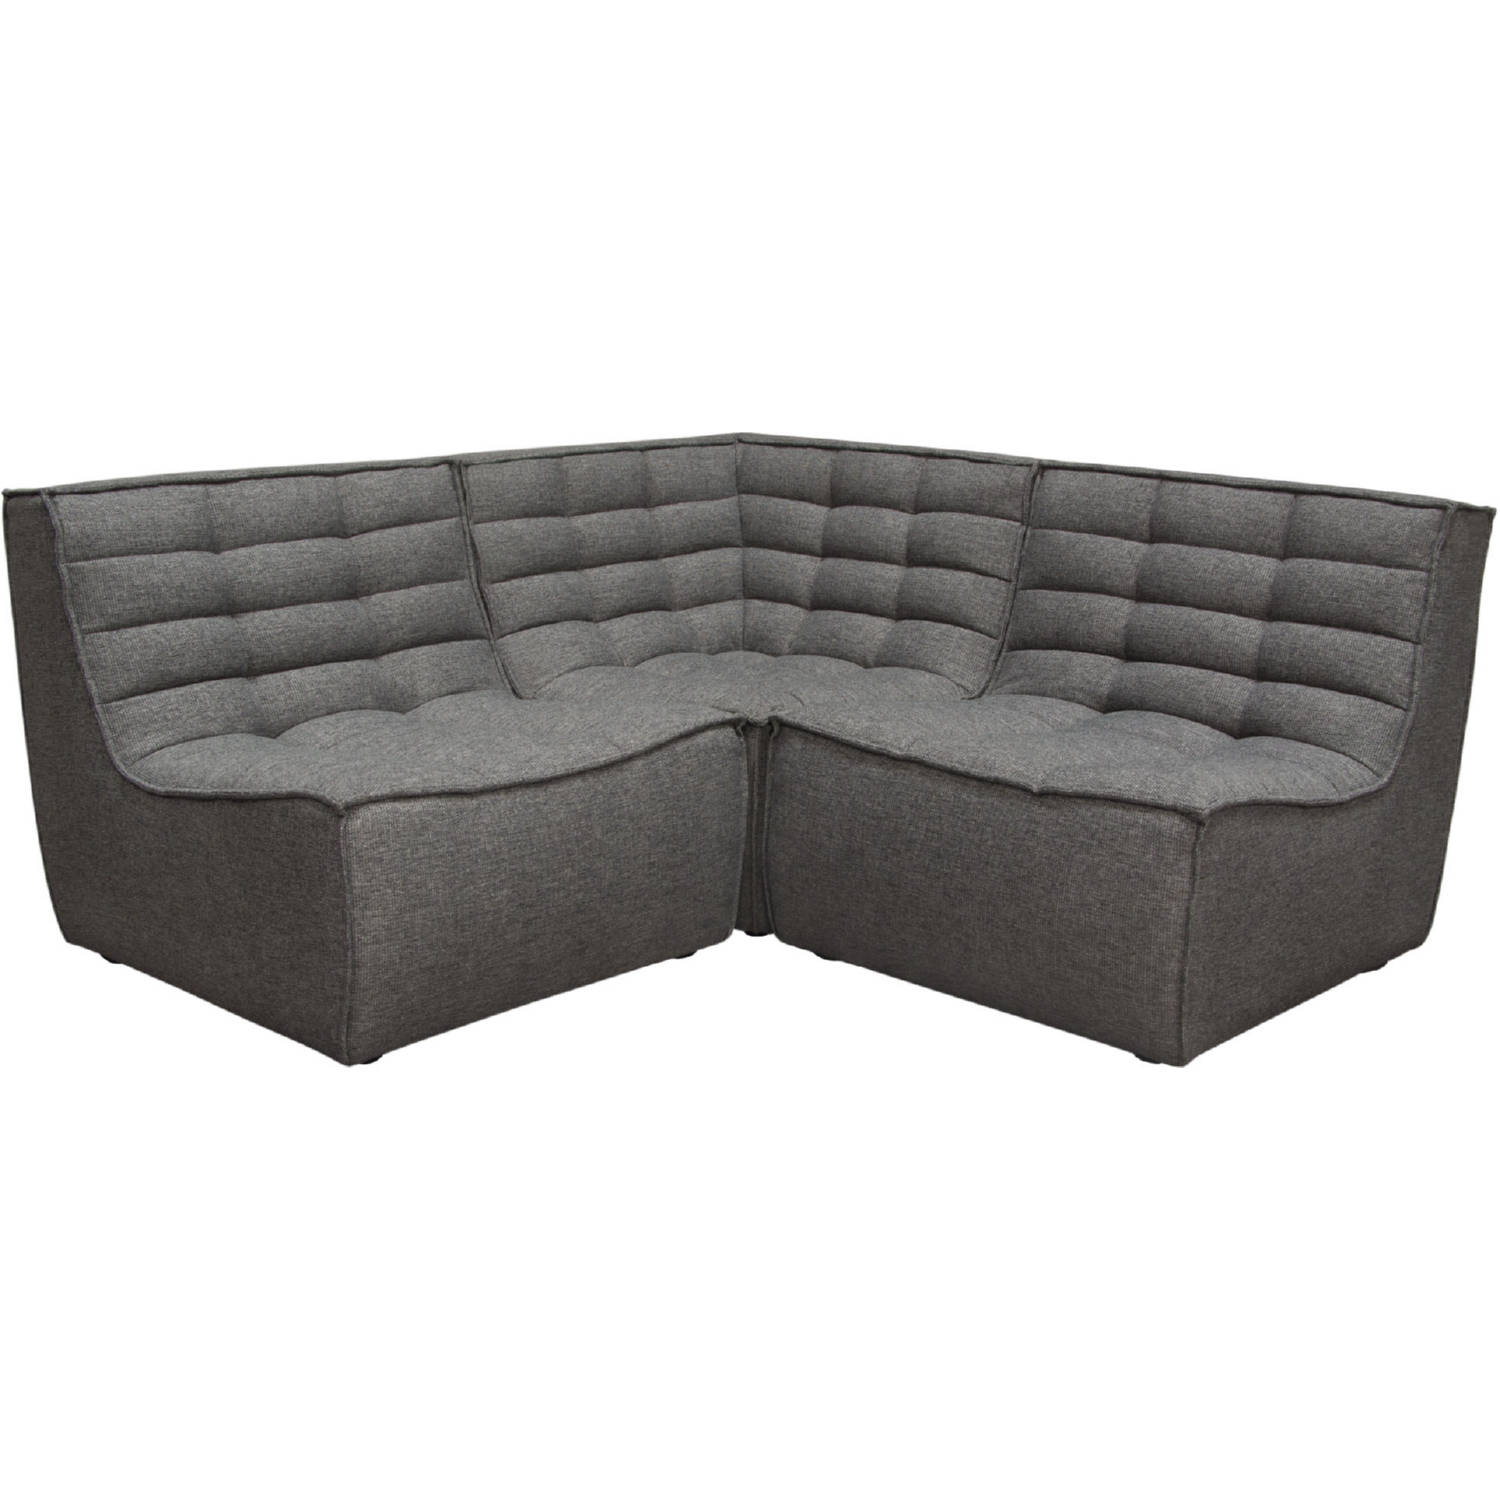 Marshall 3 Piece Modular Sectional Sofa In Tufted Grey Fabric By Diamond Sofa